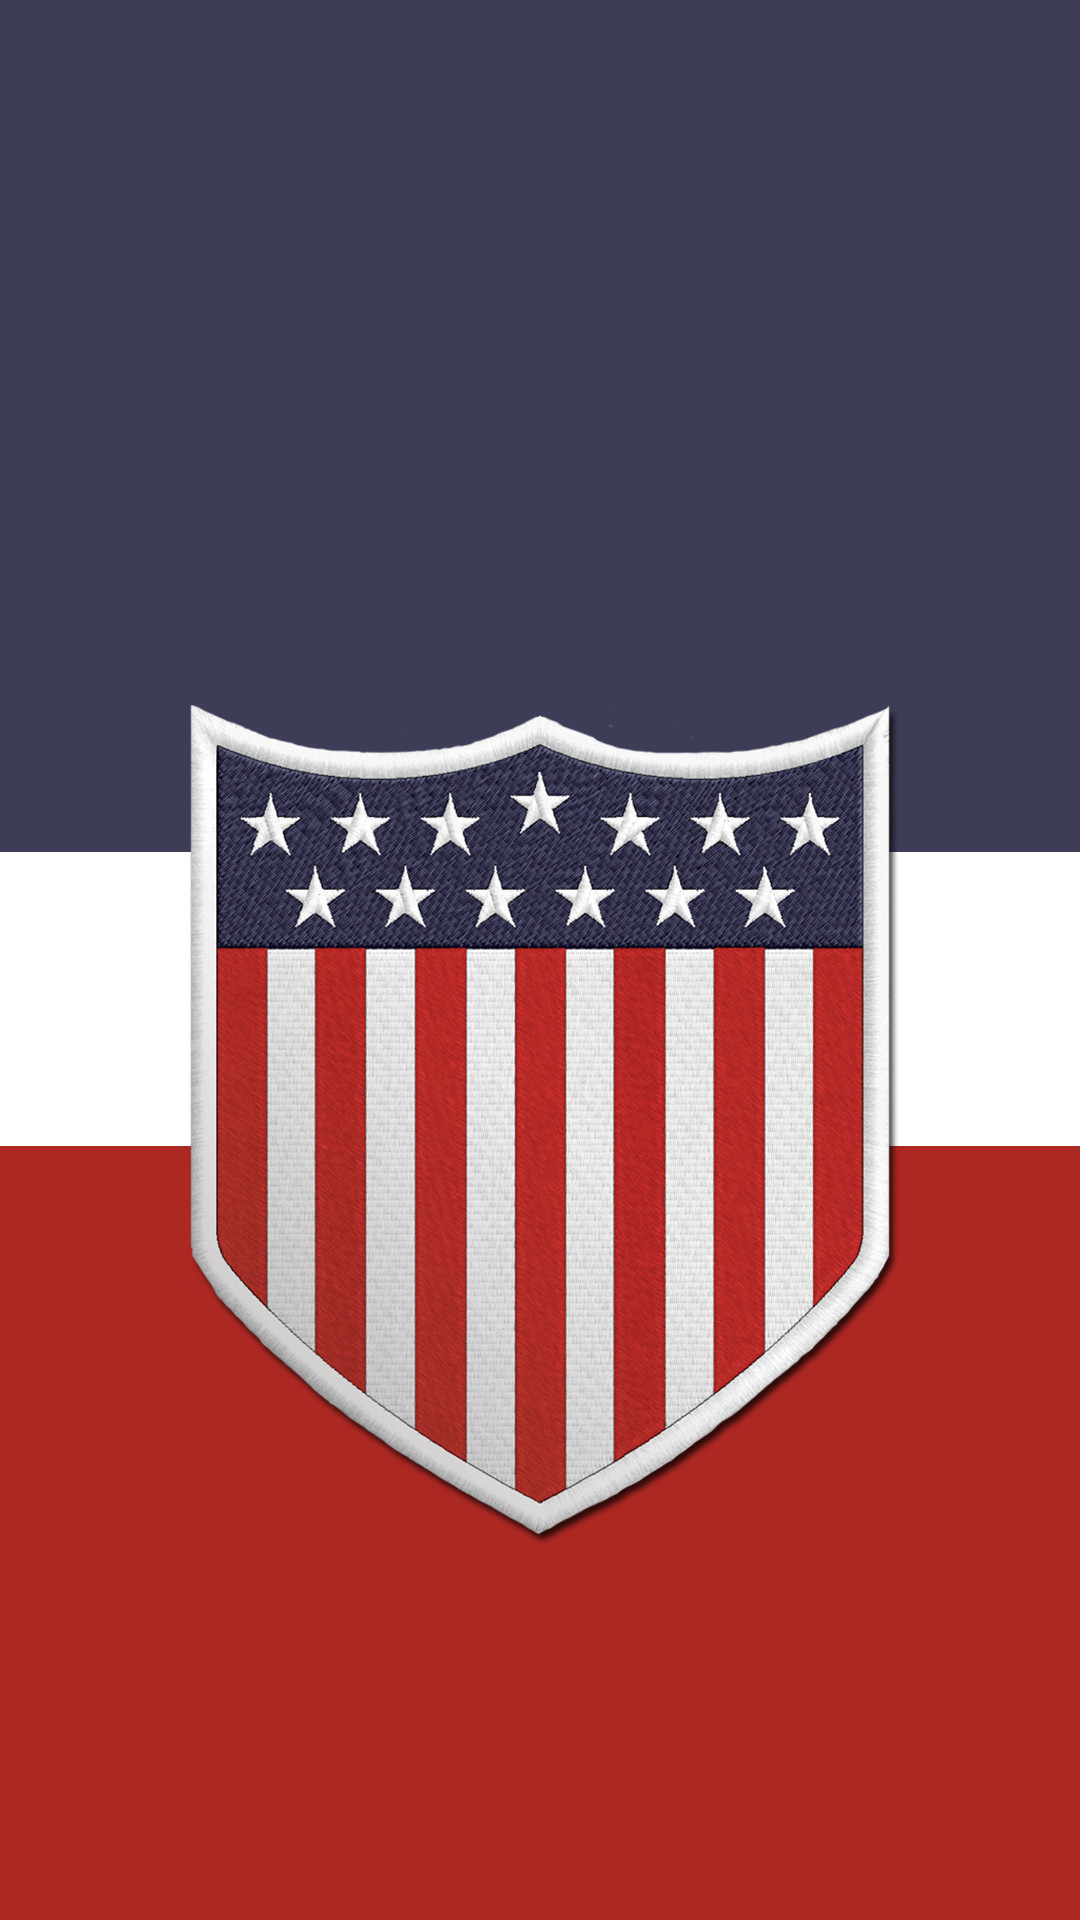 Another US soccer phone wallpaper. Centennial crest this time.